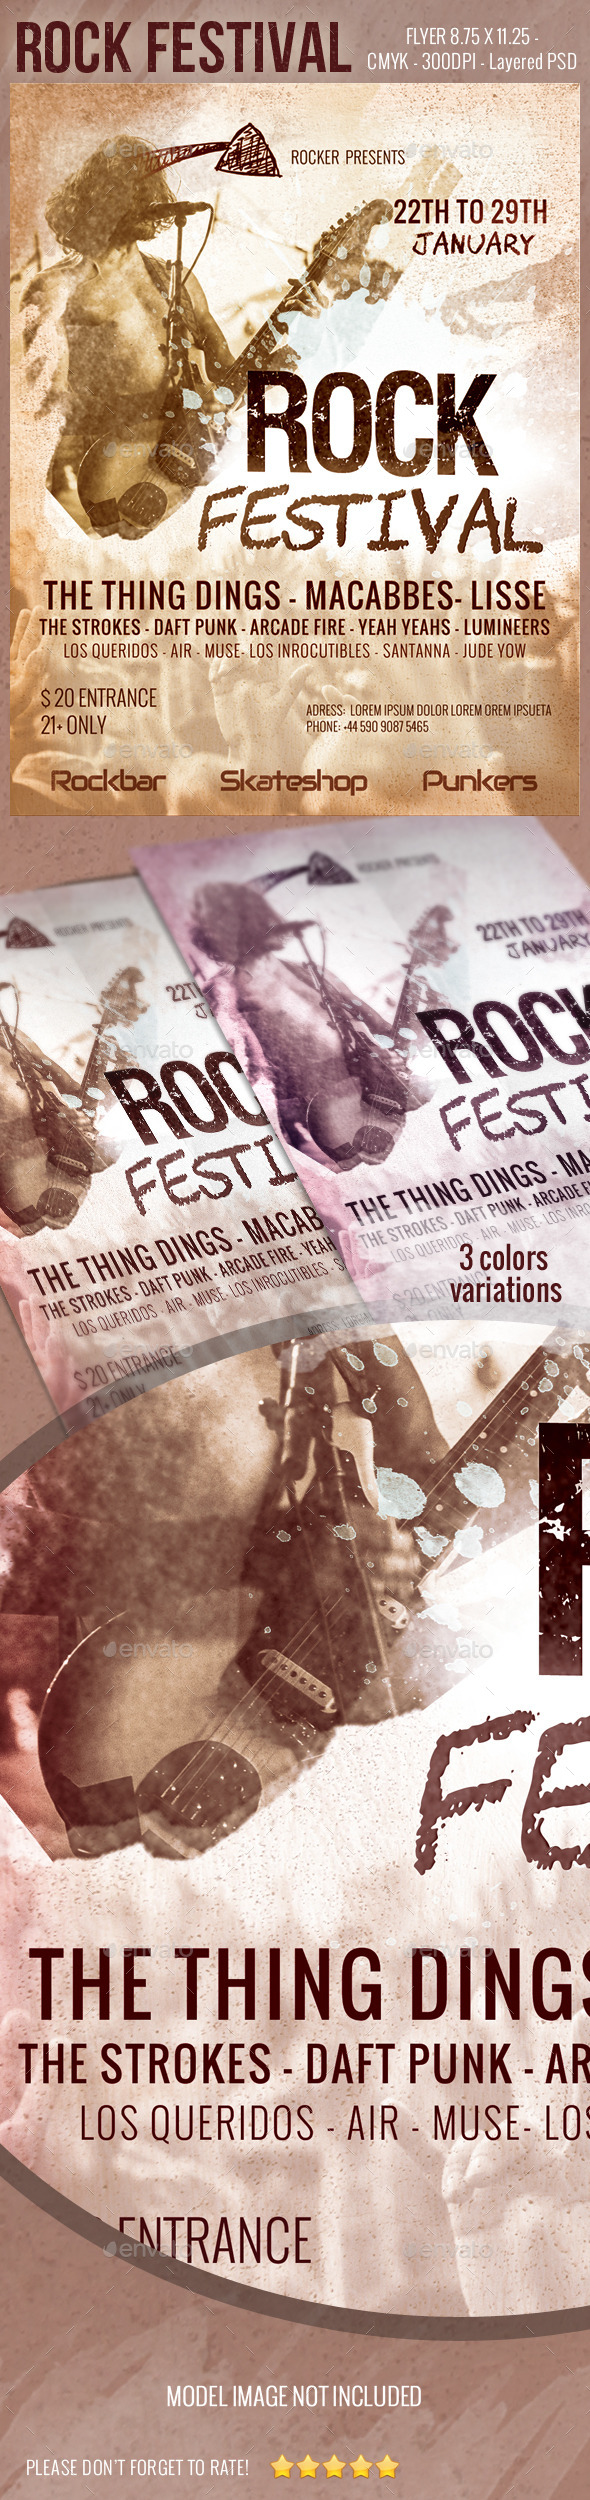 GraphicRiver Rock Festival Flyer 9230962